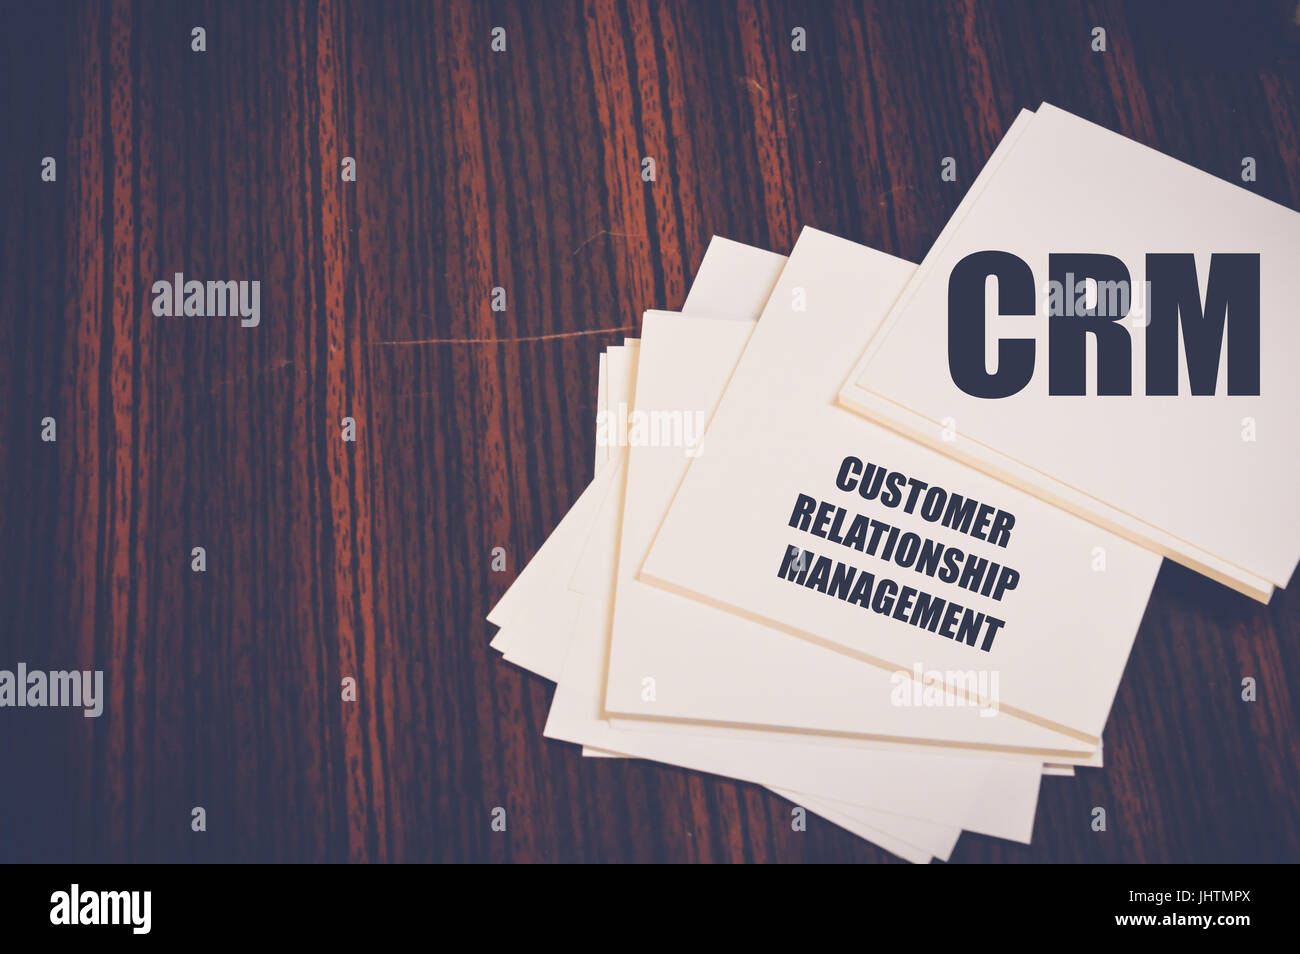 crm written on notepaper on wooden table, customer relationship management concept - Stock Image